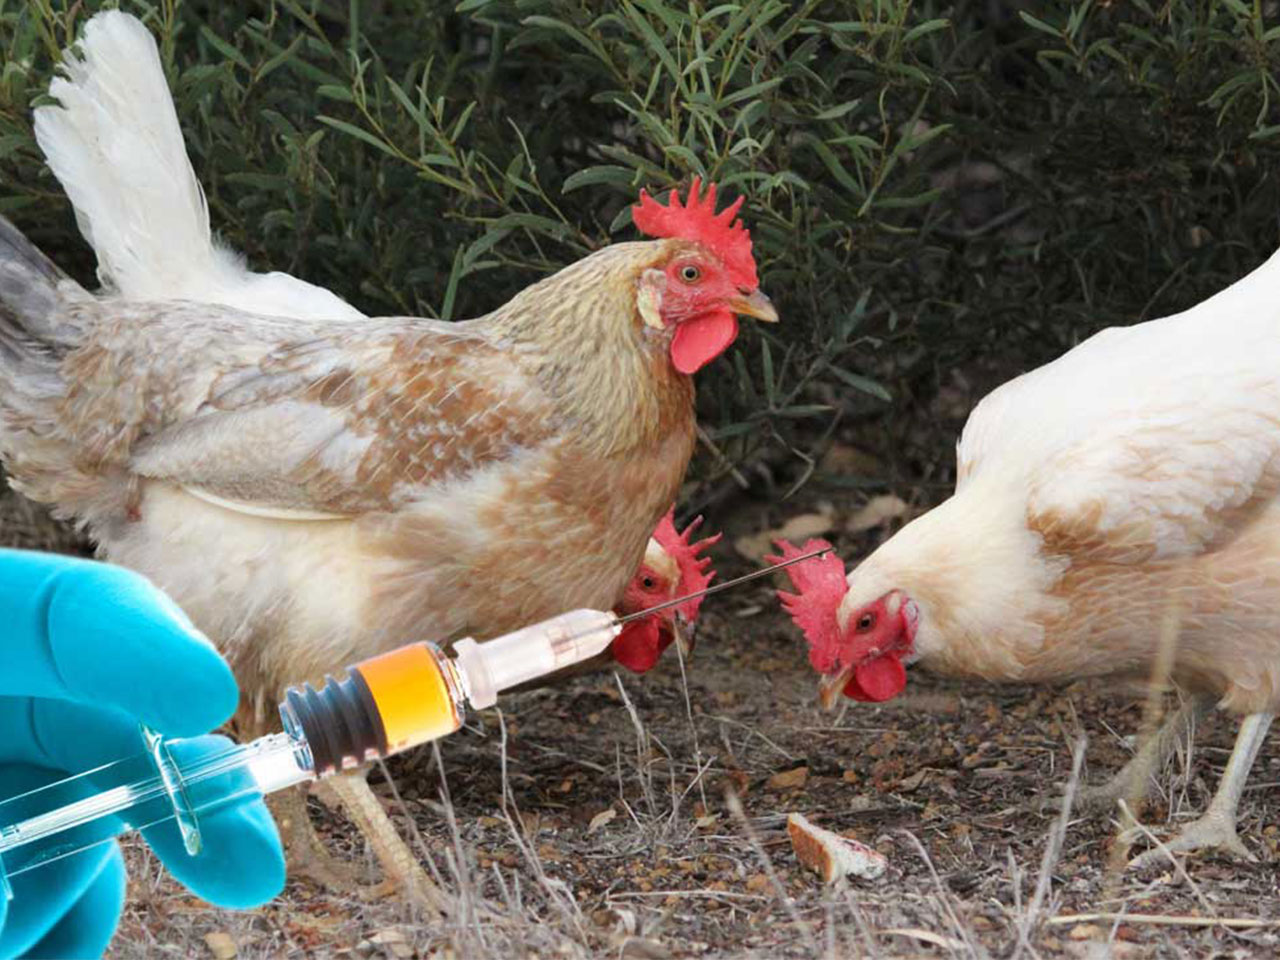 Poultry vaccination